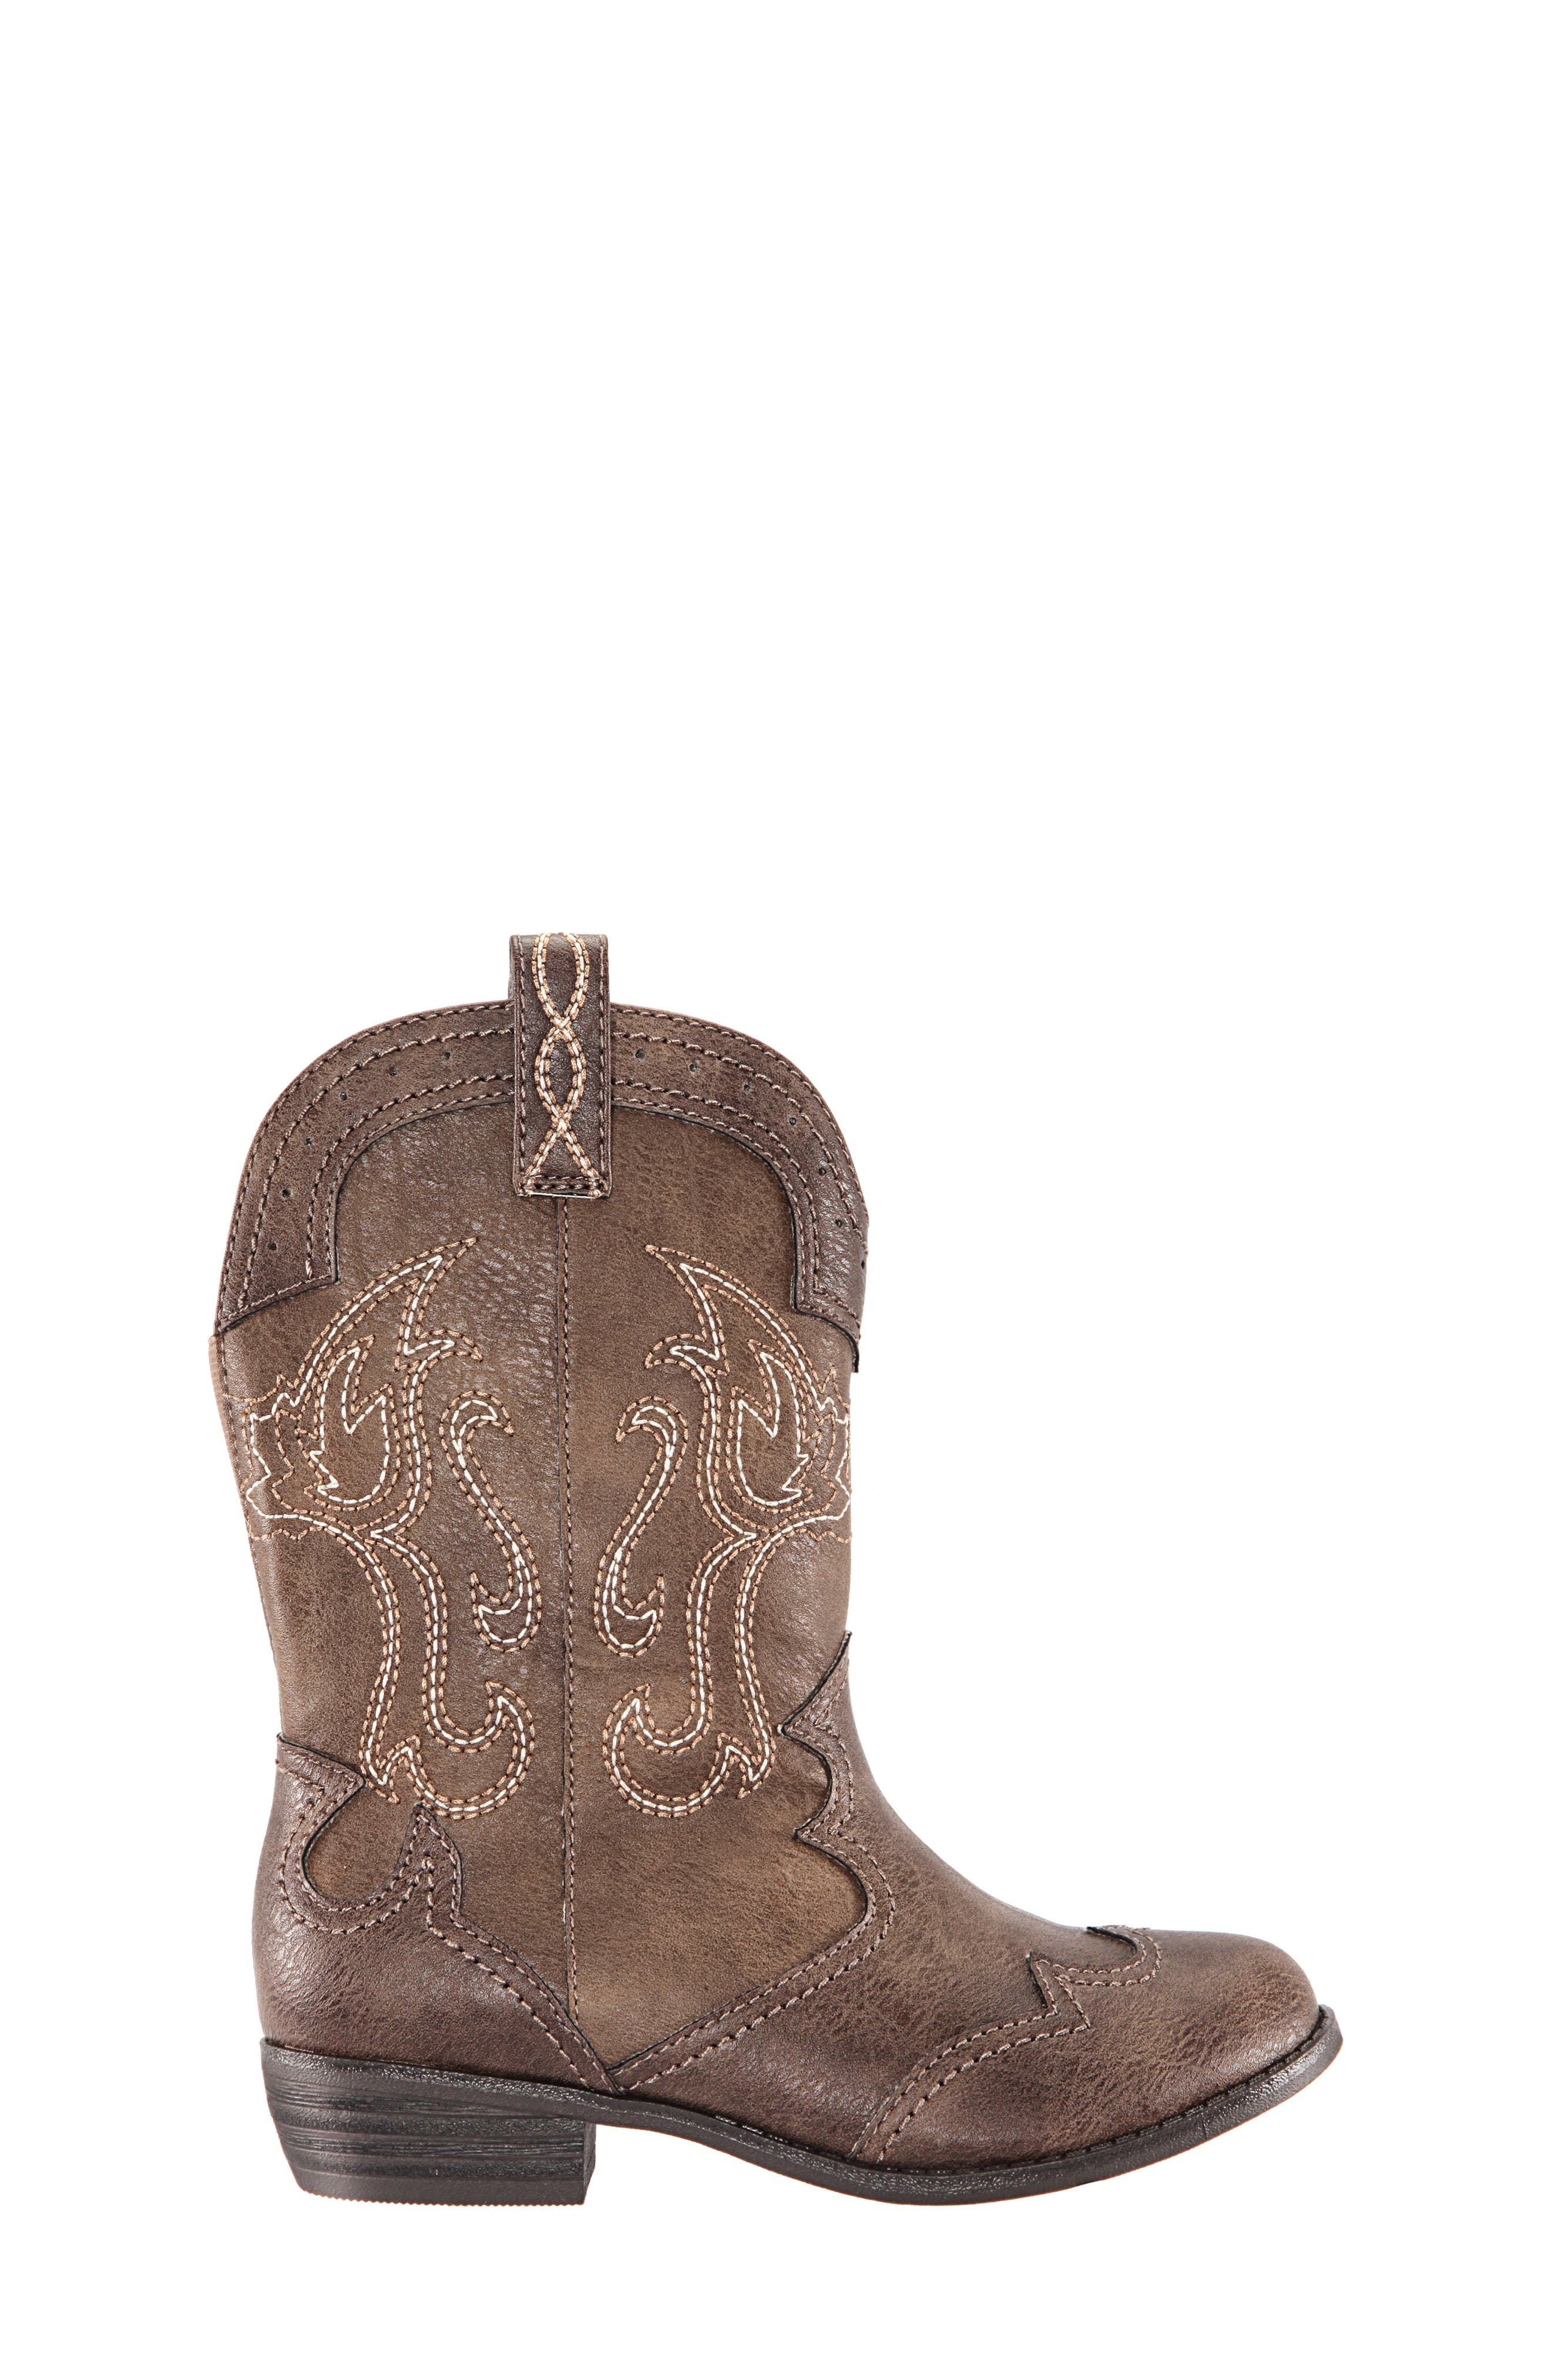 Beti Western Boot,                             Alternate thumbnail 3, color,                             BROWN DISTRESSED